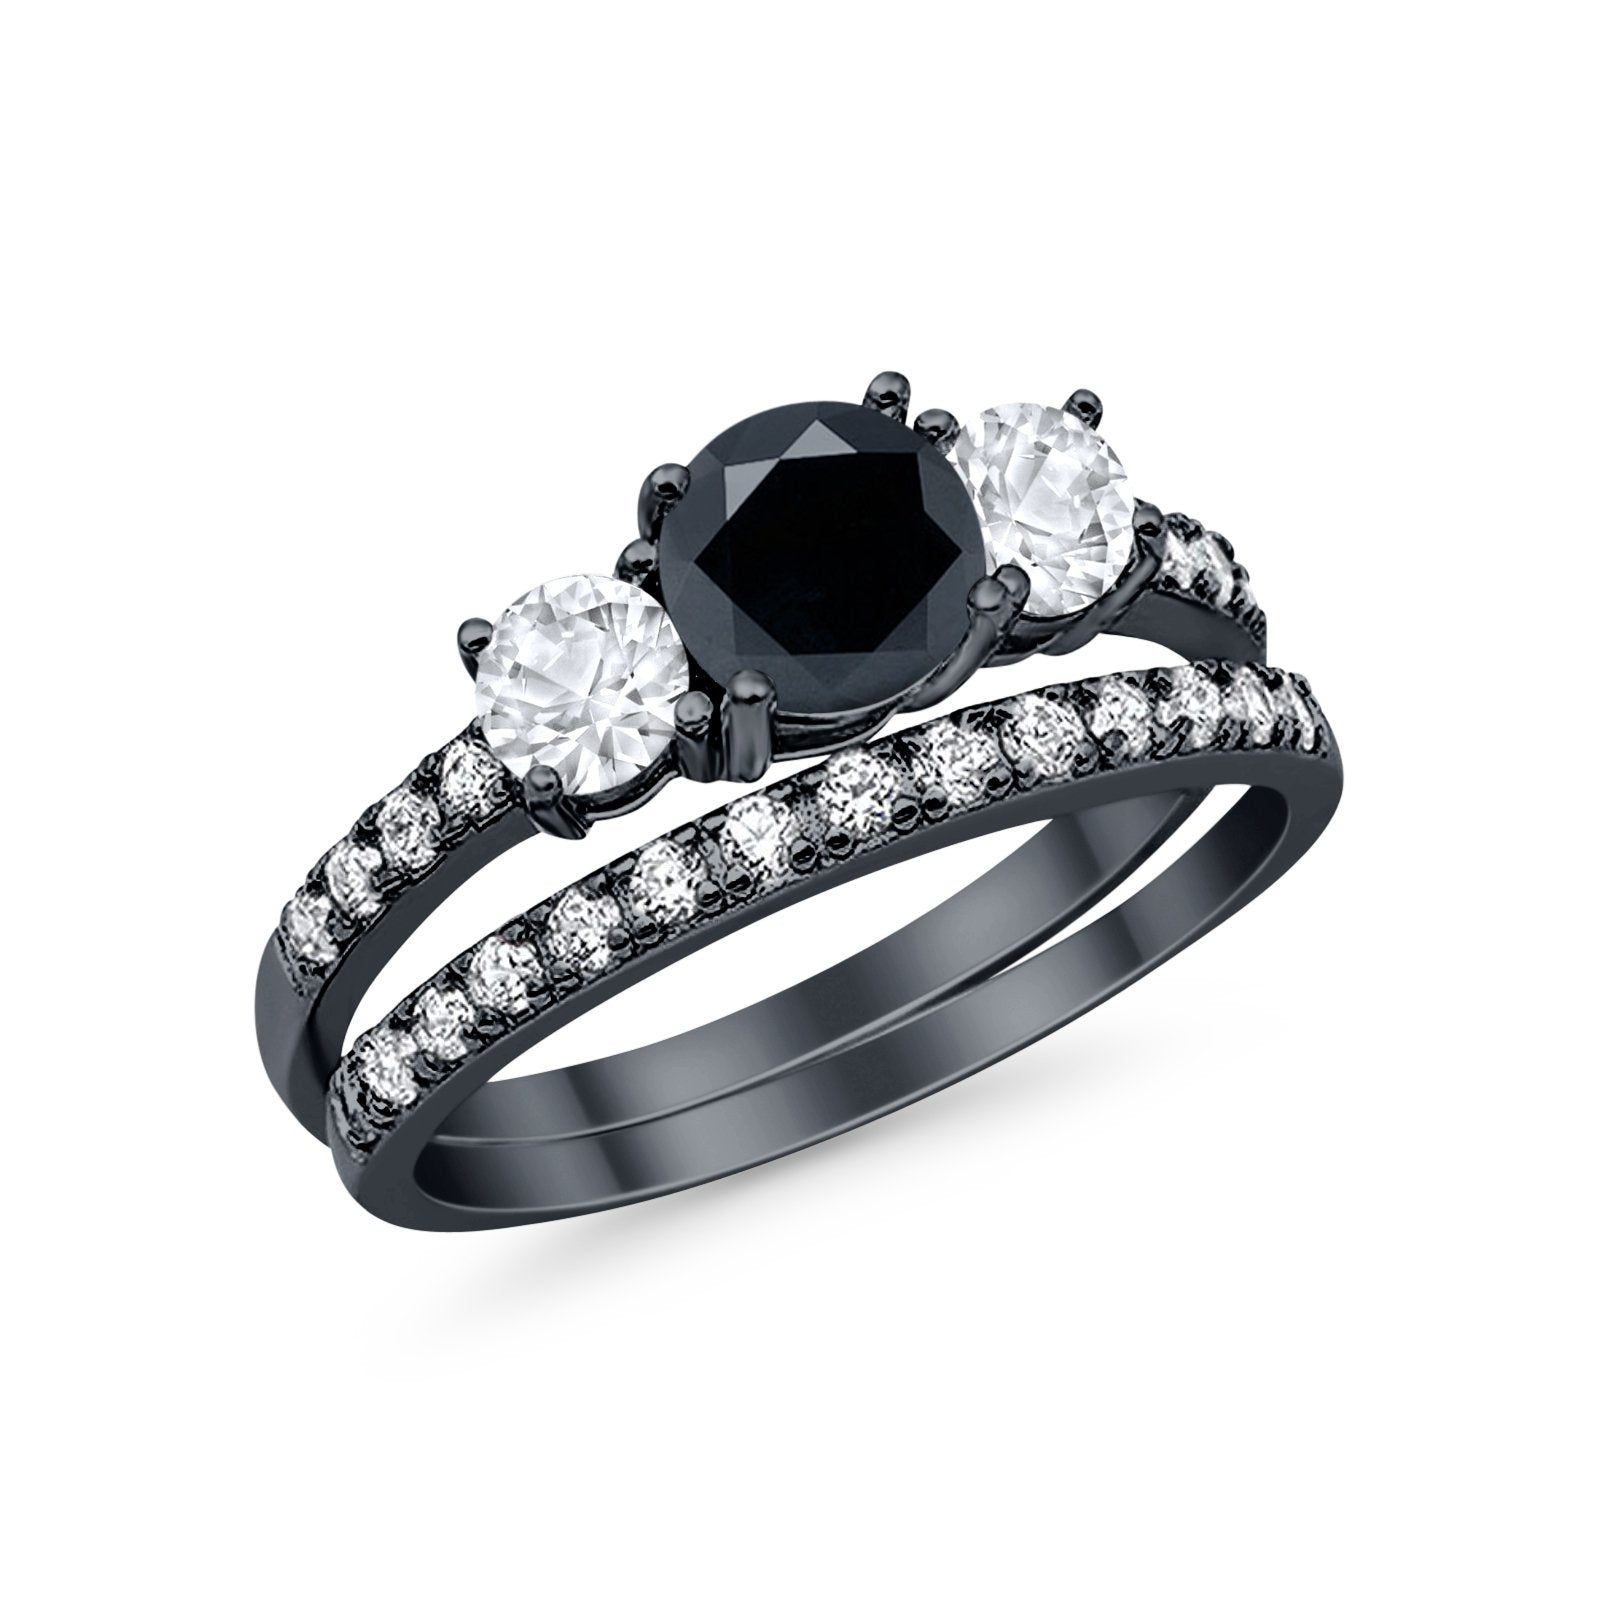 Wedding Piece Bridal Ring Black Tone, Simulated Black CZ 925 Sterling Silver